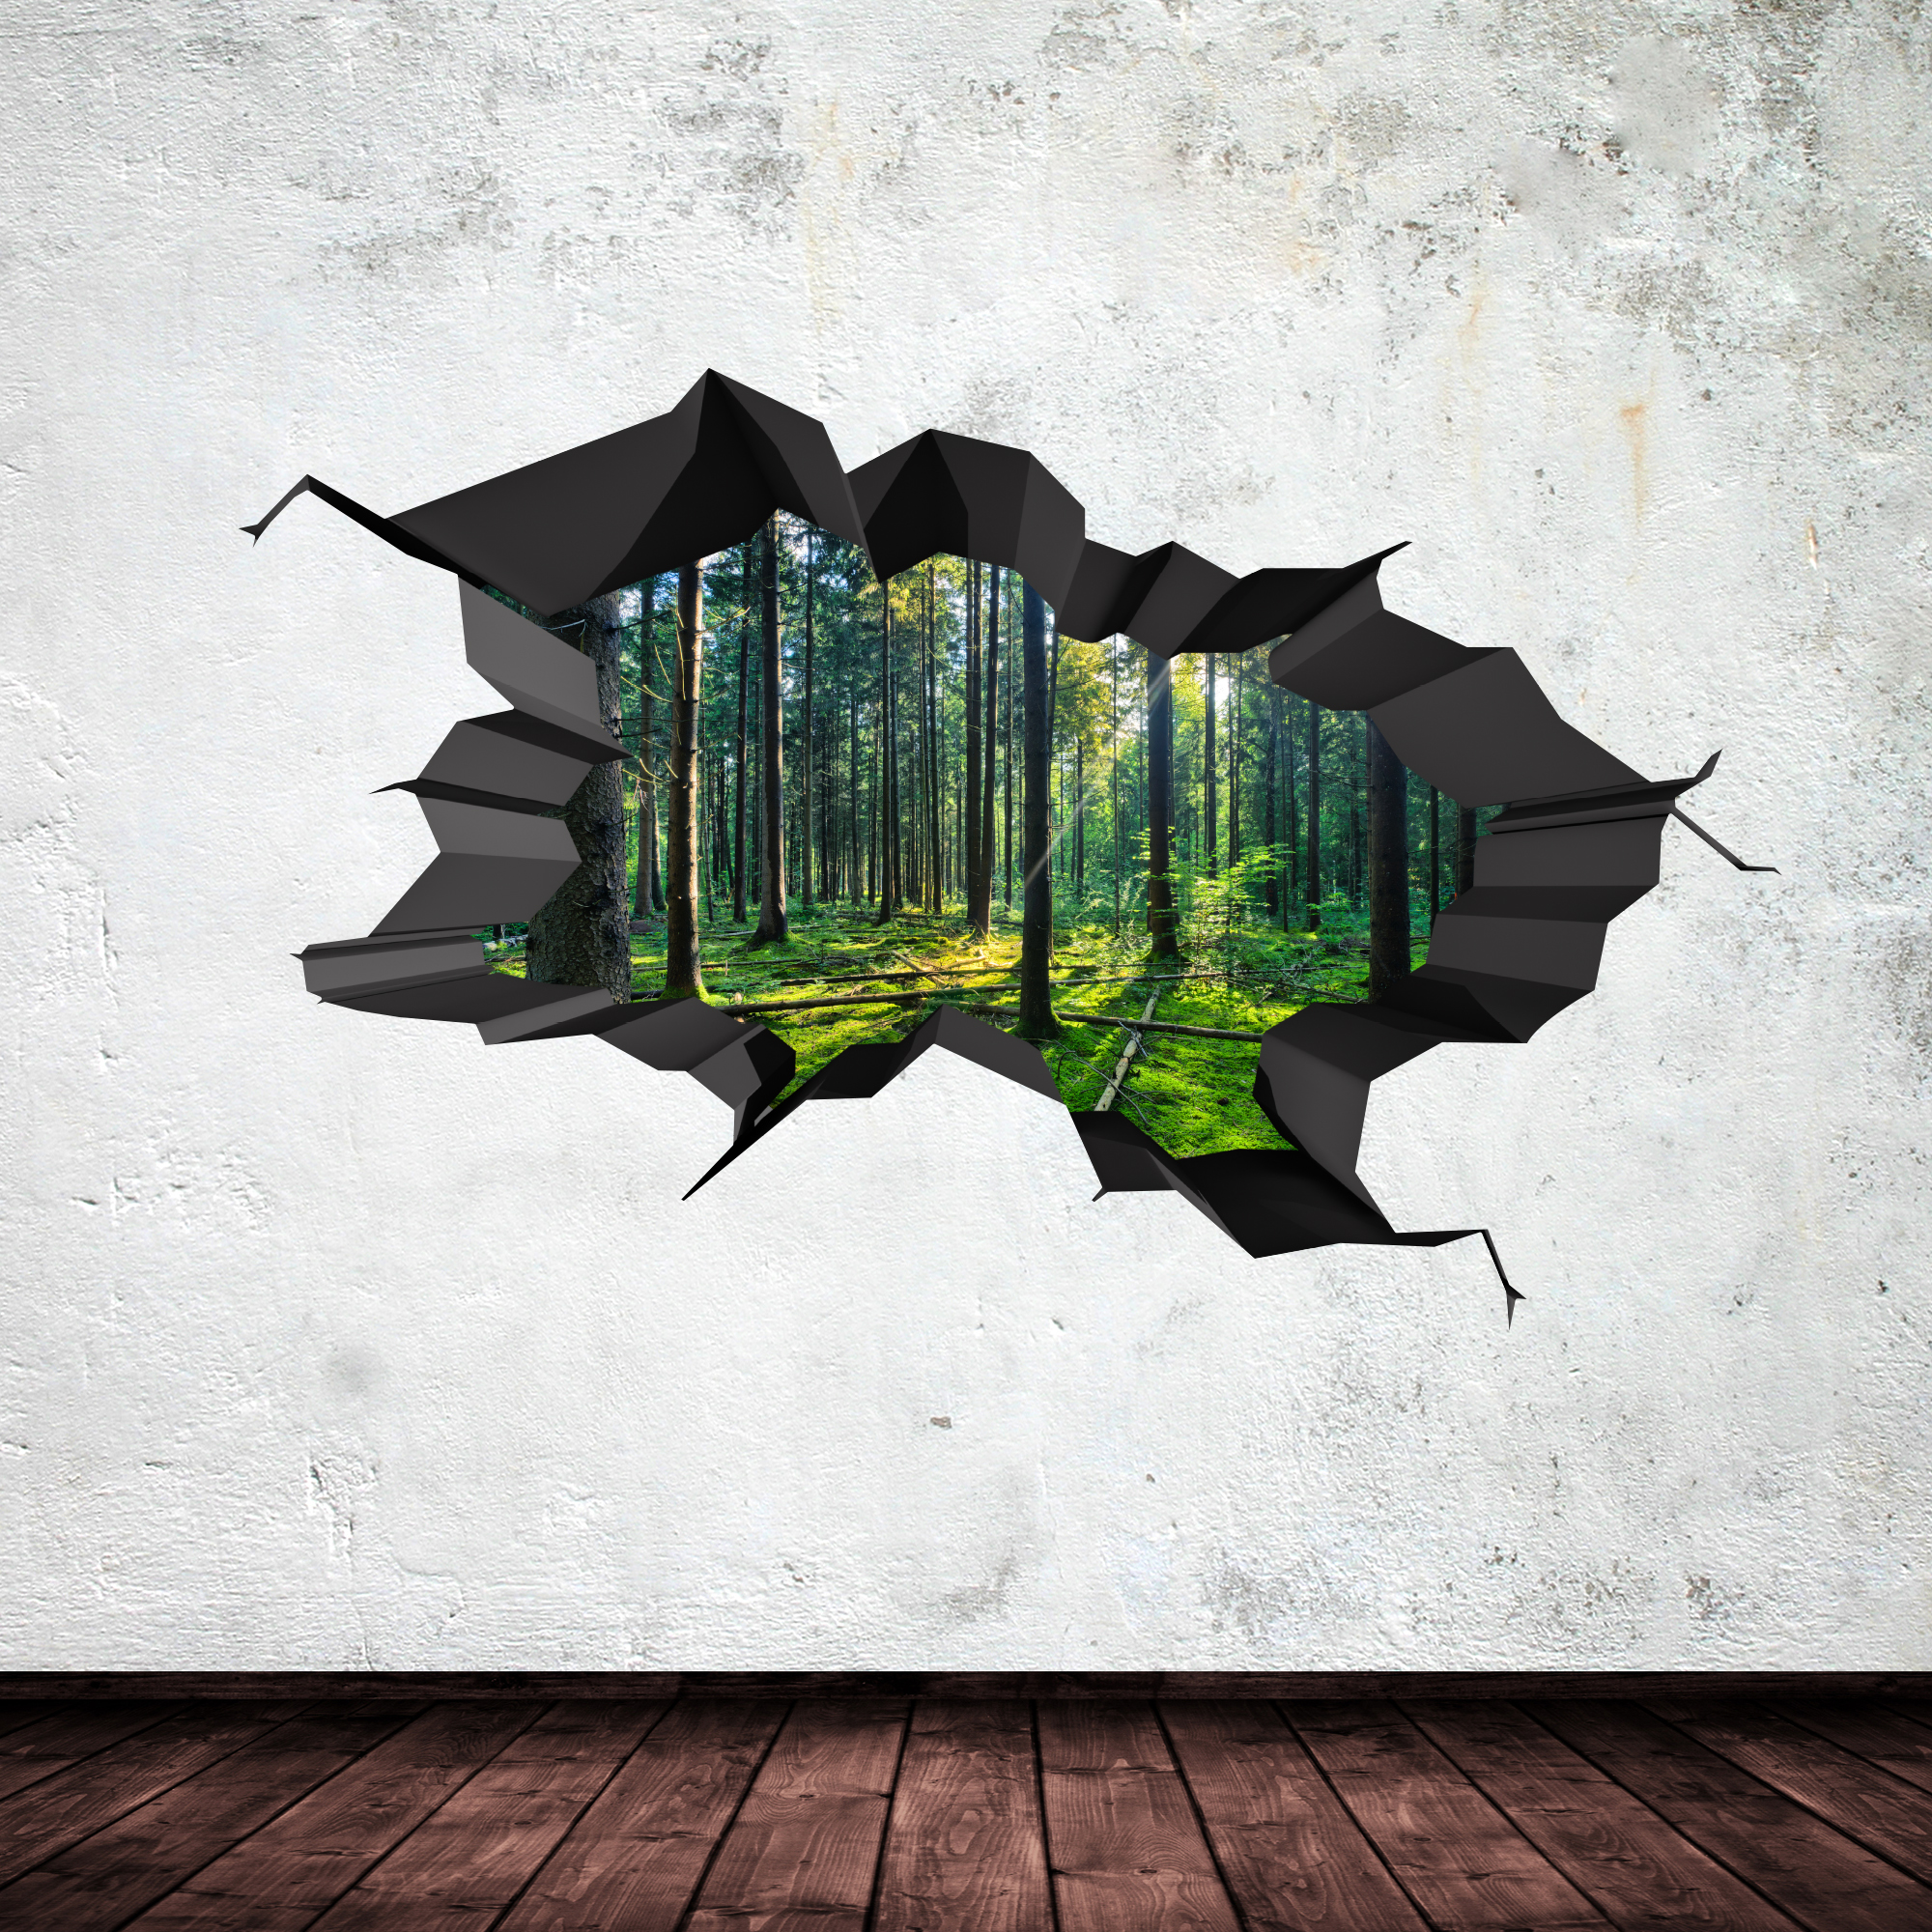 FULL COLOUR WOODS FOREST TREES JUNGLE CRACKED 3D